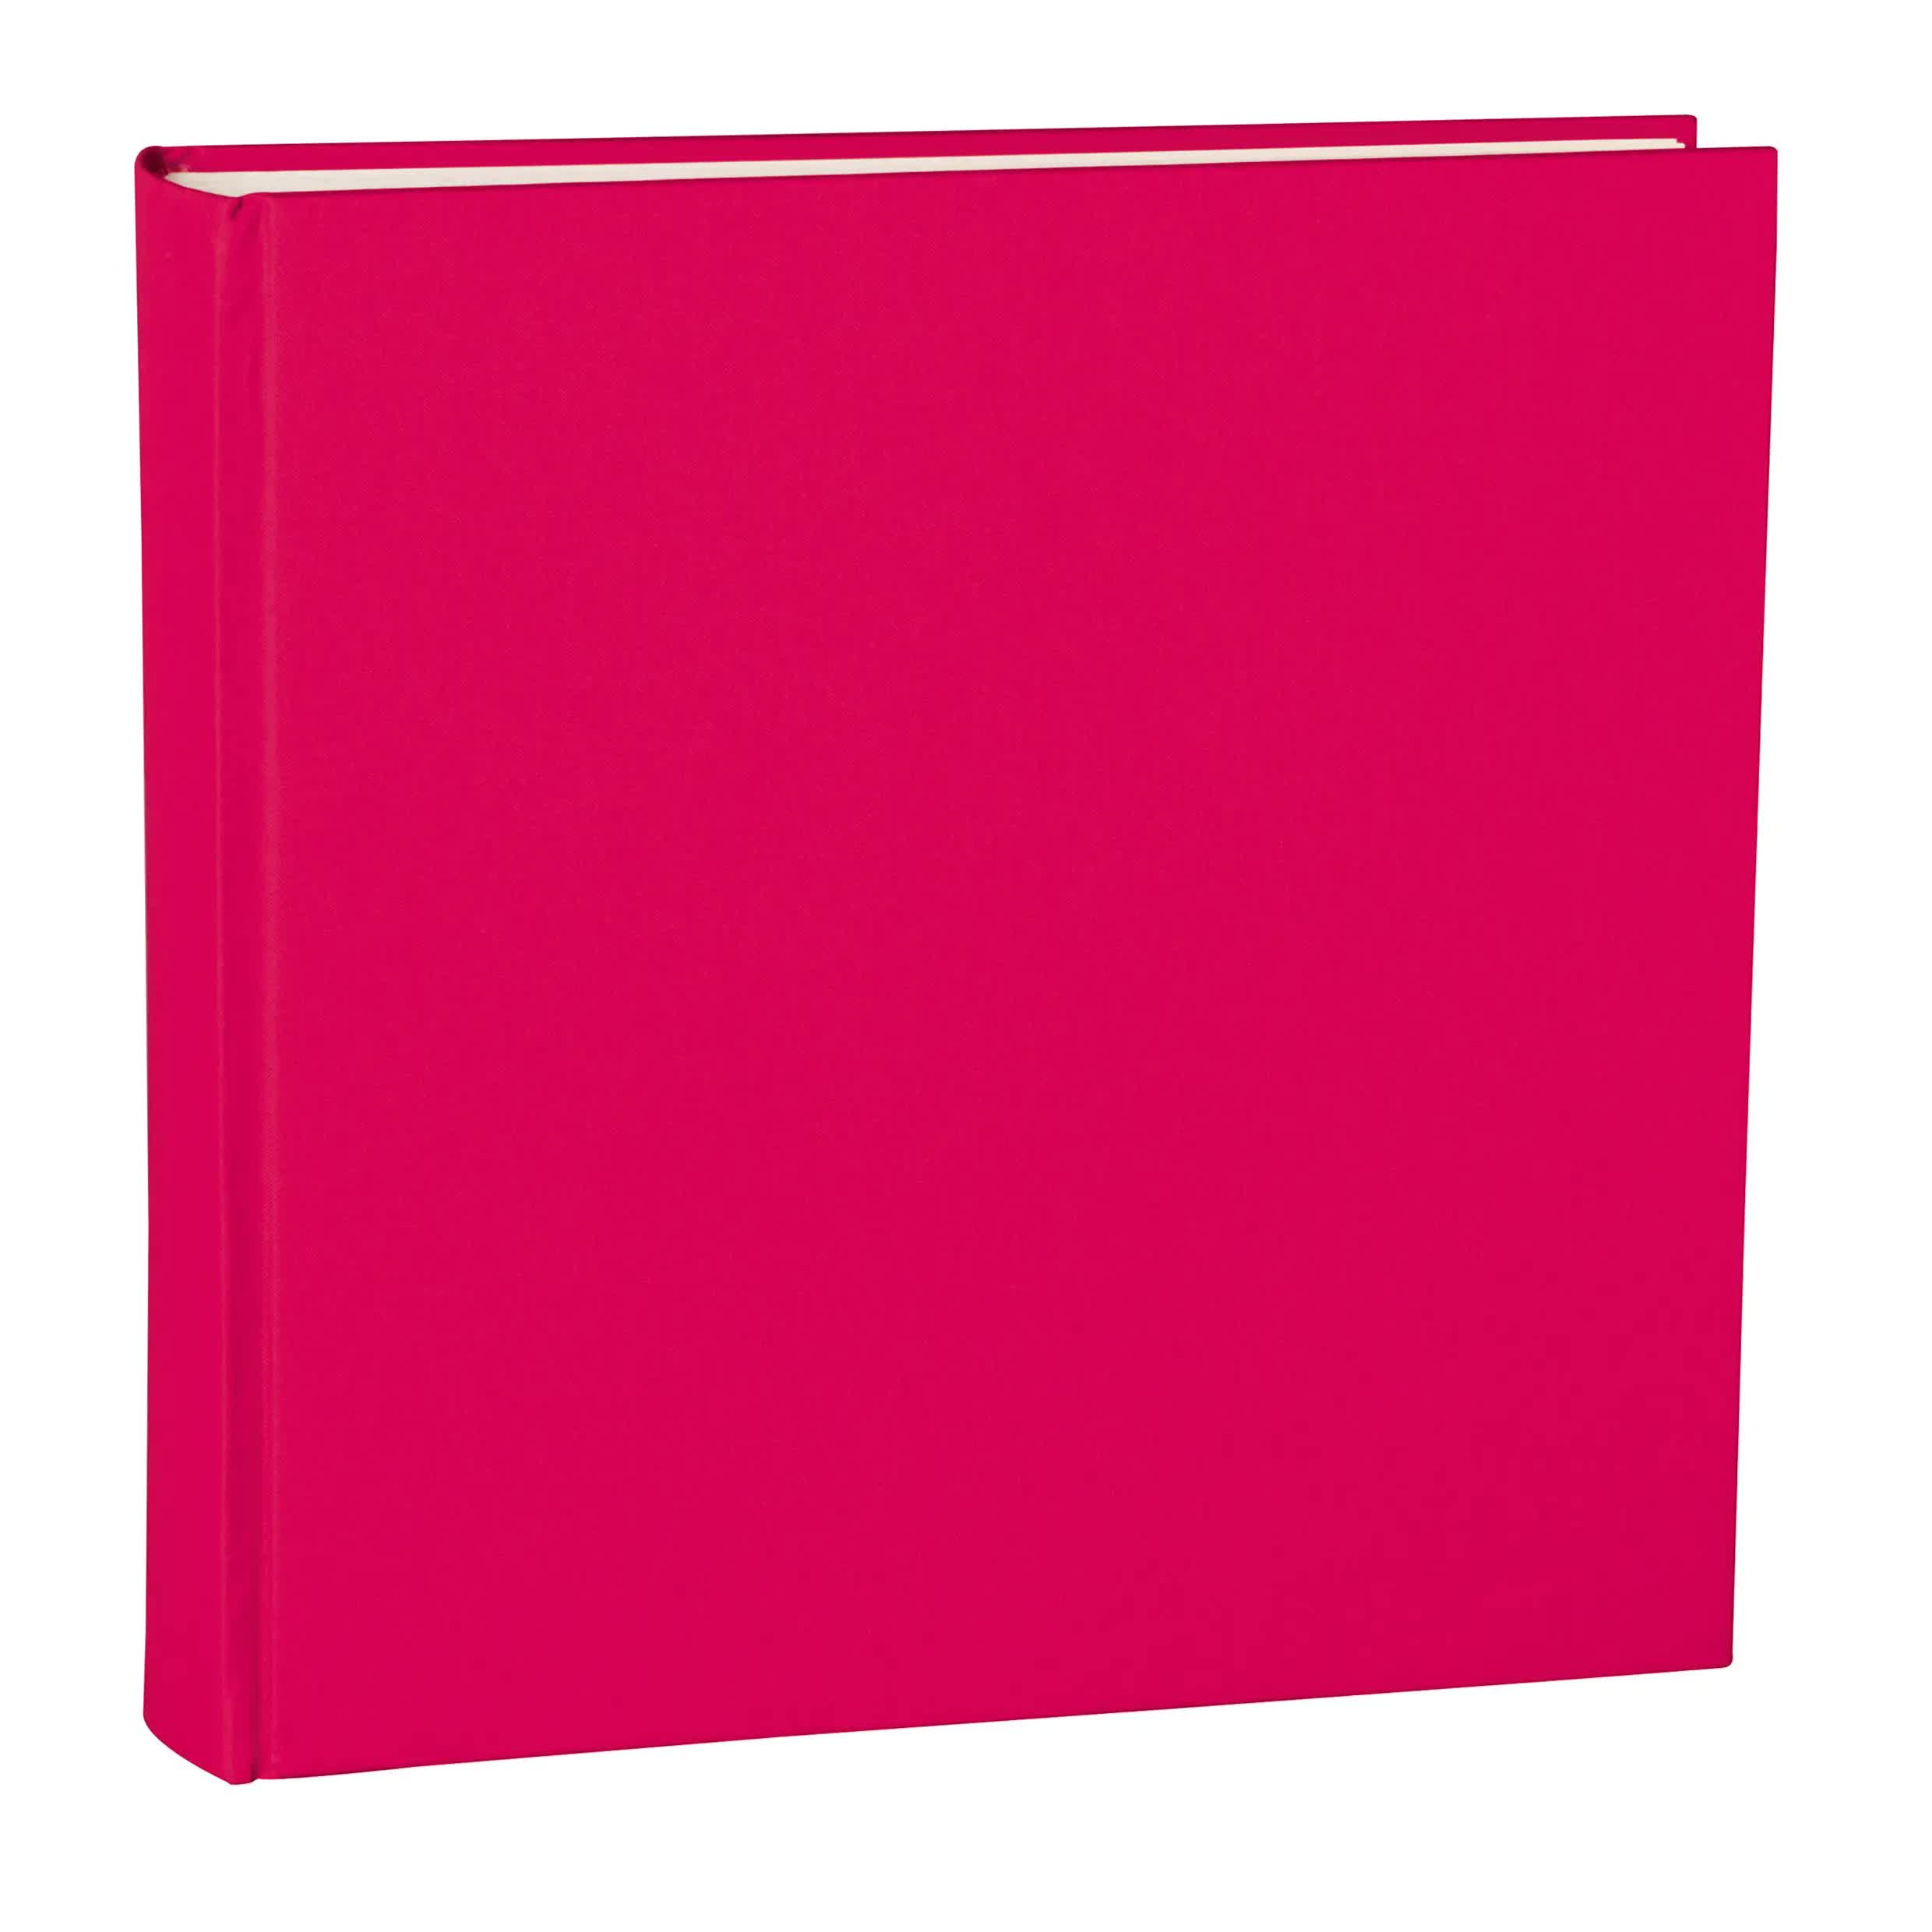 Burgundy 20 Sheets Photo mounting Board for 23 Ring Photo Album